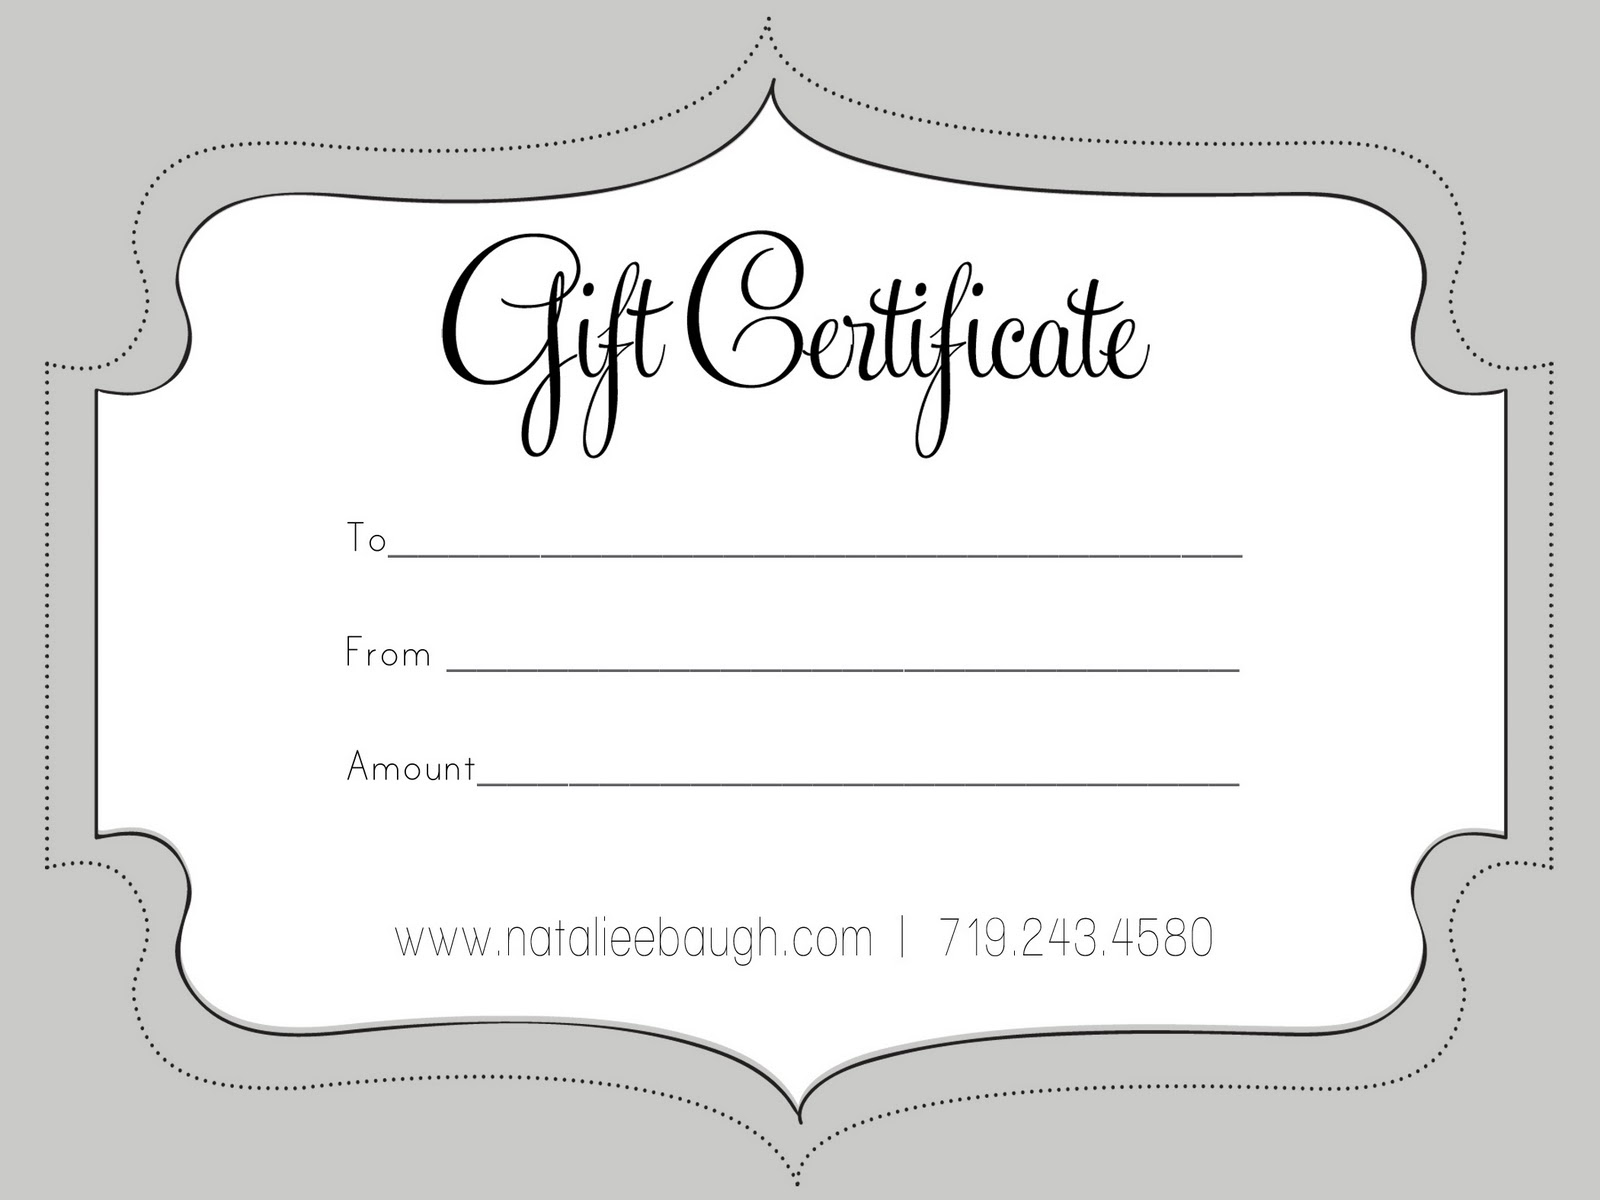 gift certificate templates for word stock certificate designs – Uk Share Certificate Template